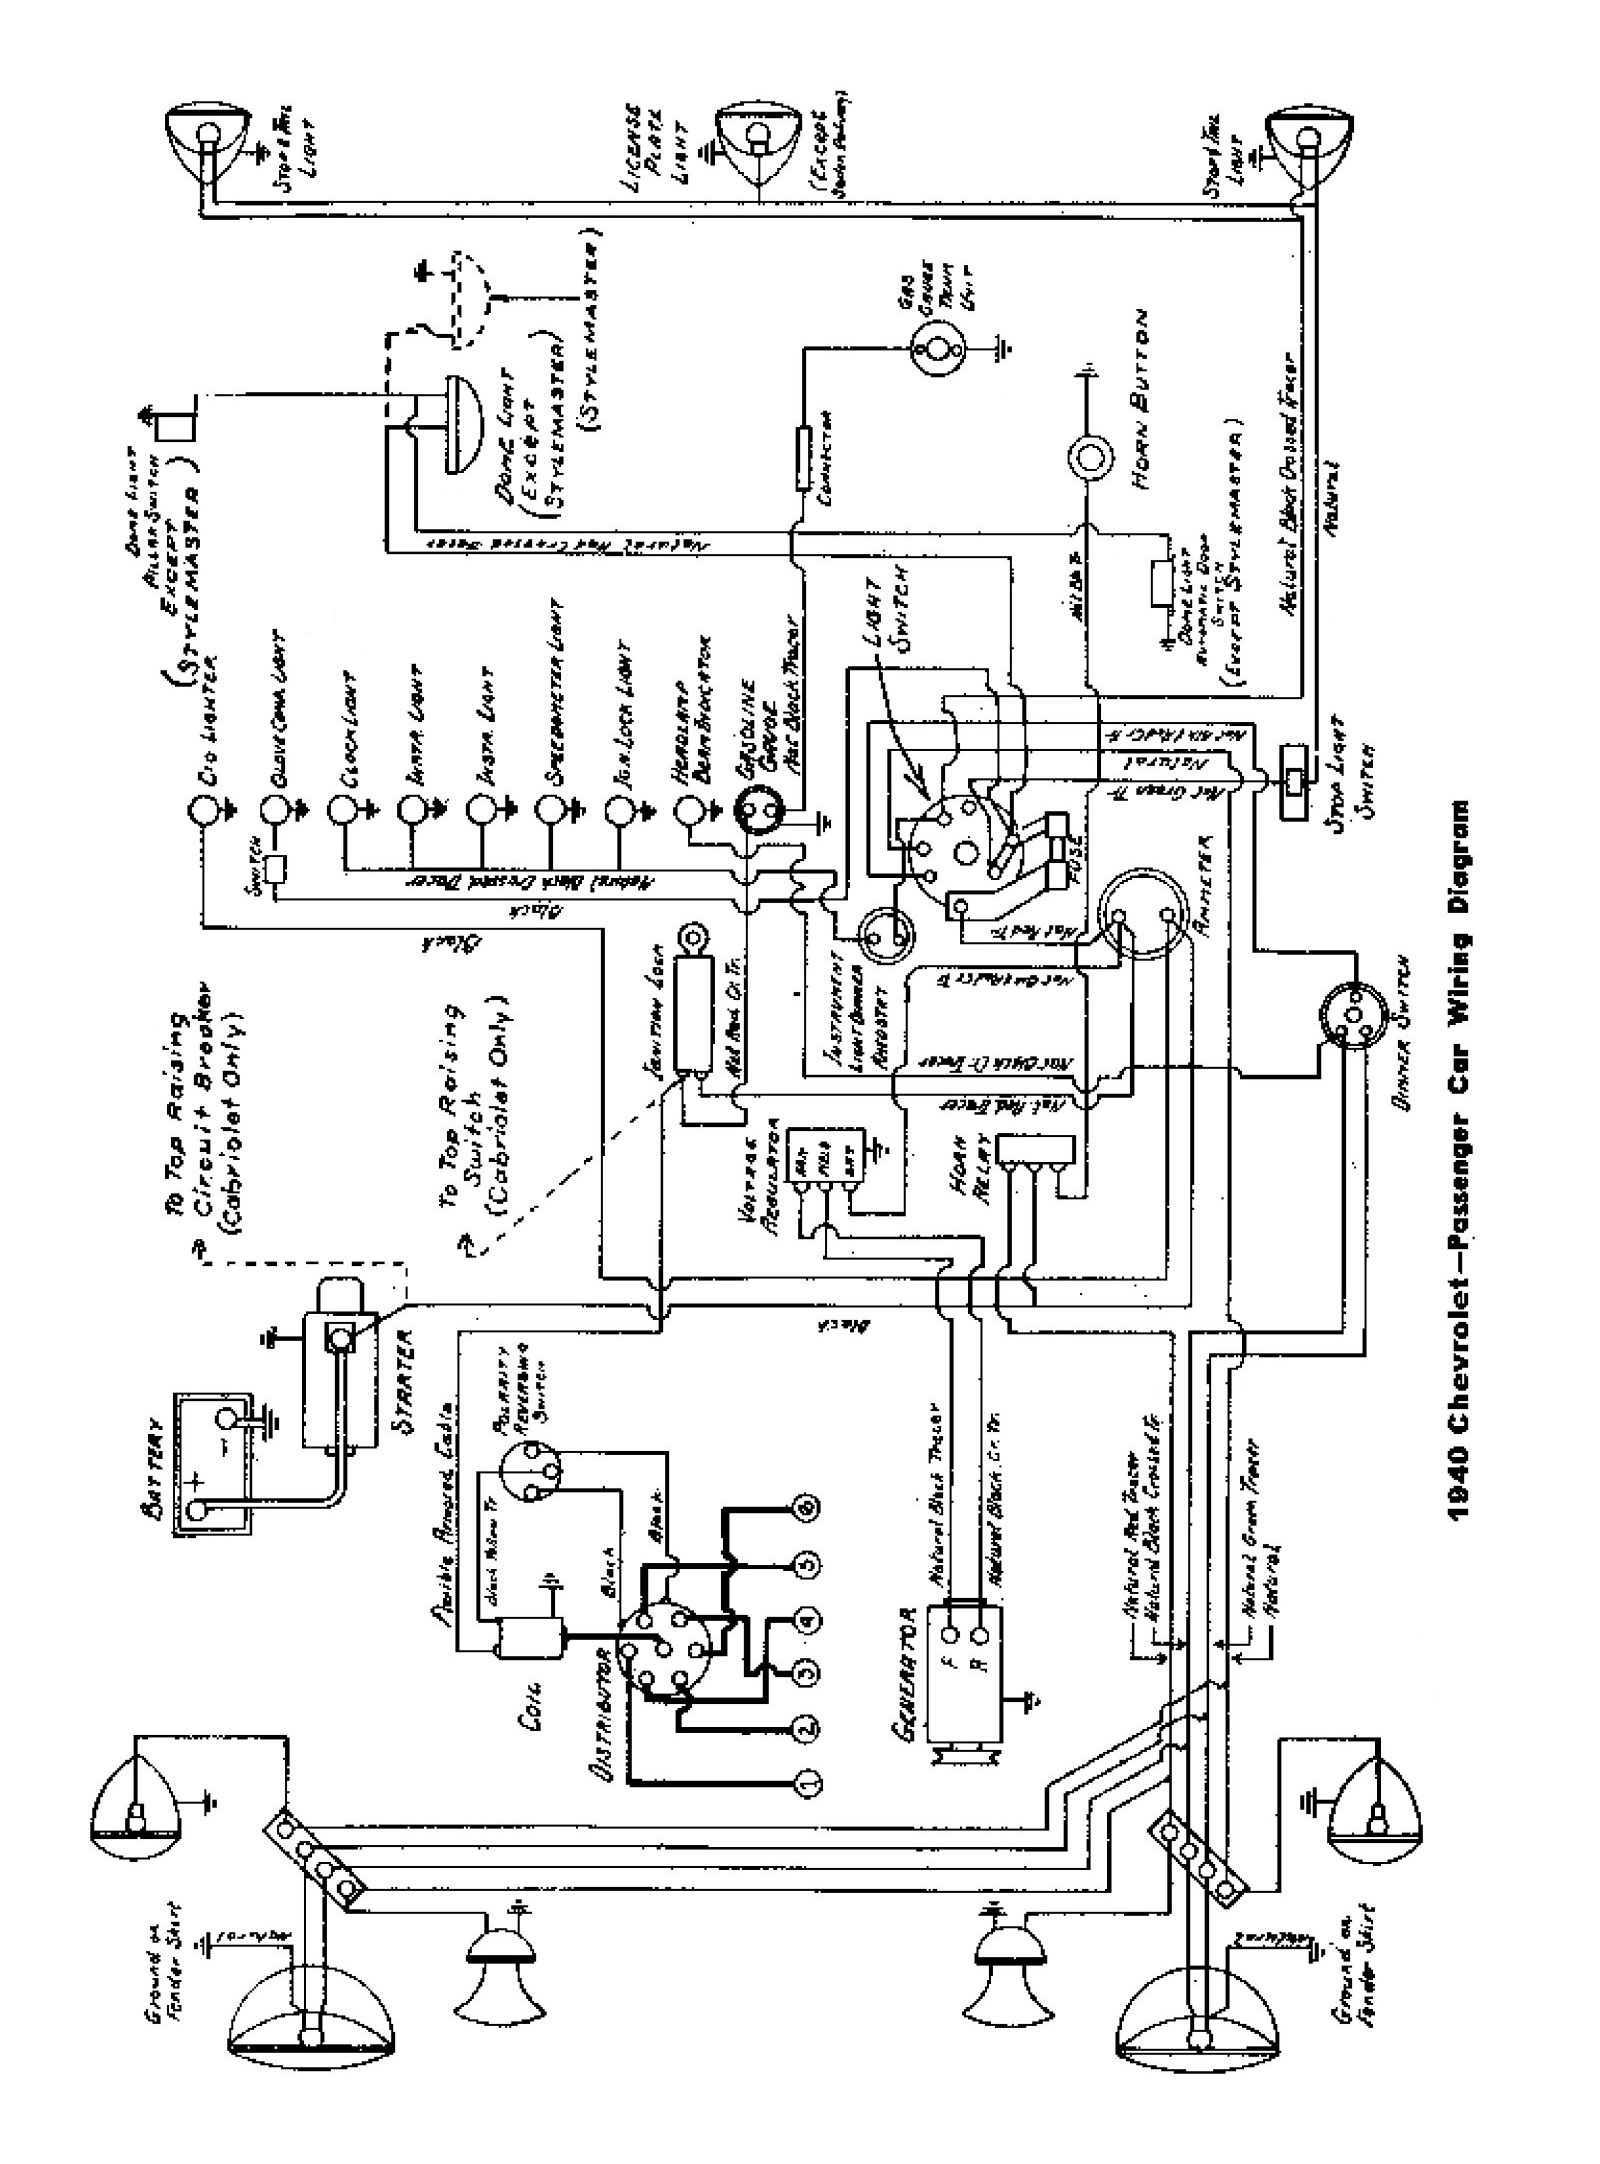 1956 International Pickup Wiring Diagram Guide And Troubleshooting Humbucker Moreover Guitar Two Humbuckers Diagrams Scematic Rh 54 Jessicadonath De Dual